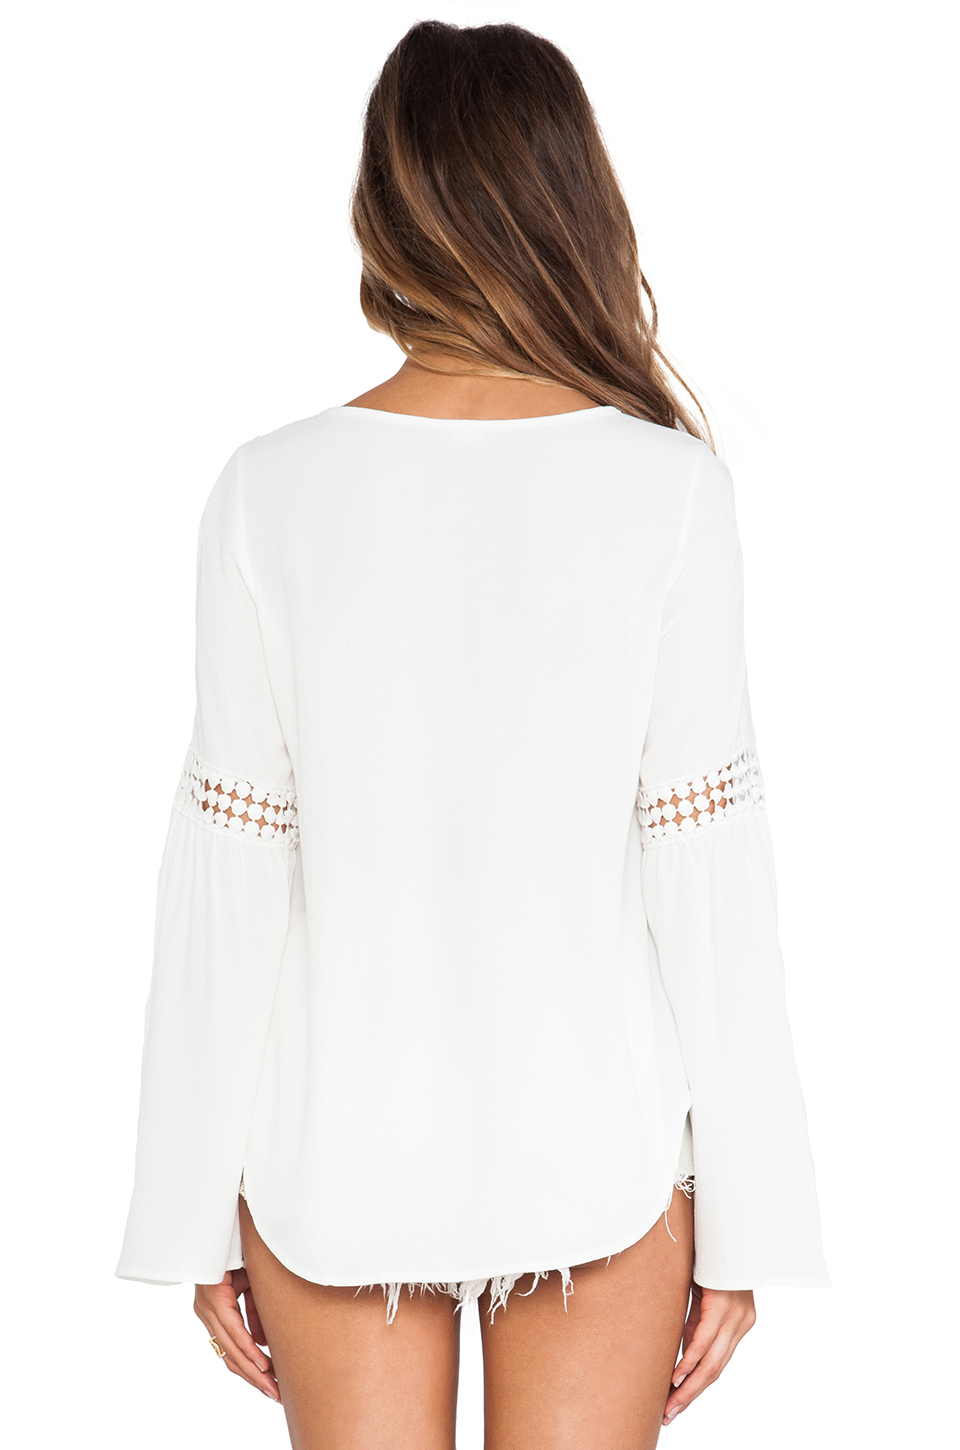 Surf Gypsy Crochet Inset Bell Sleeve Top in White | REVOLVE